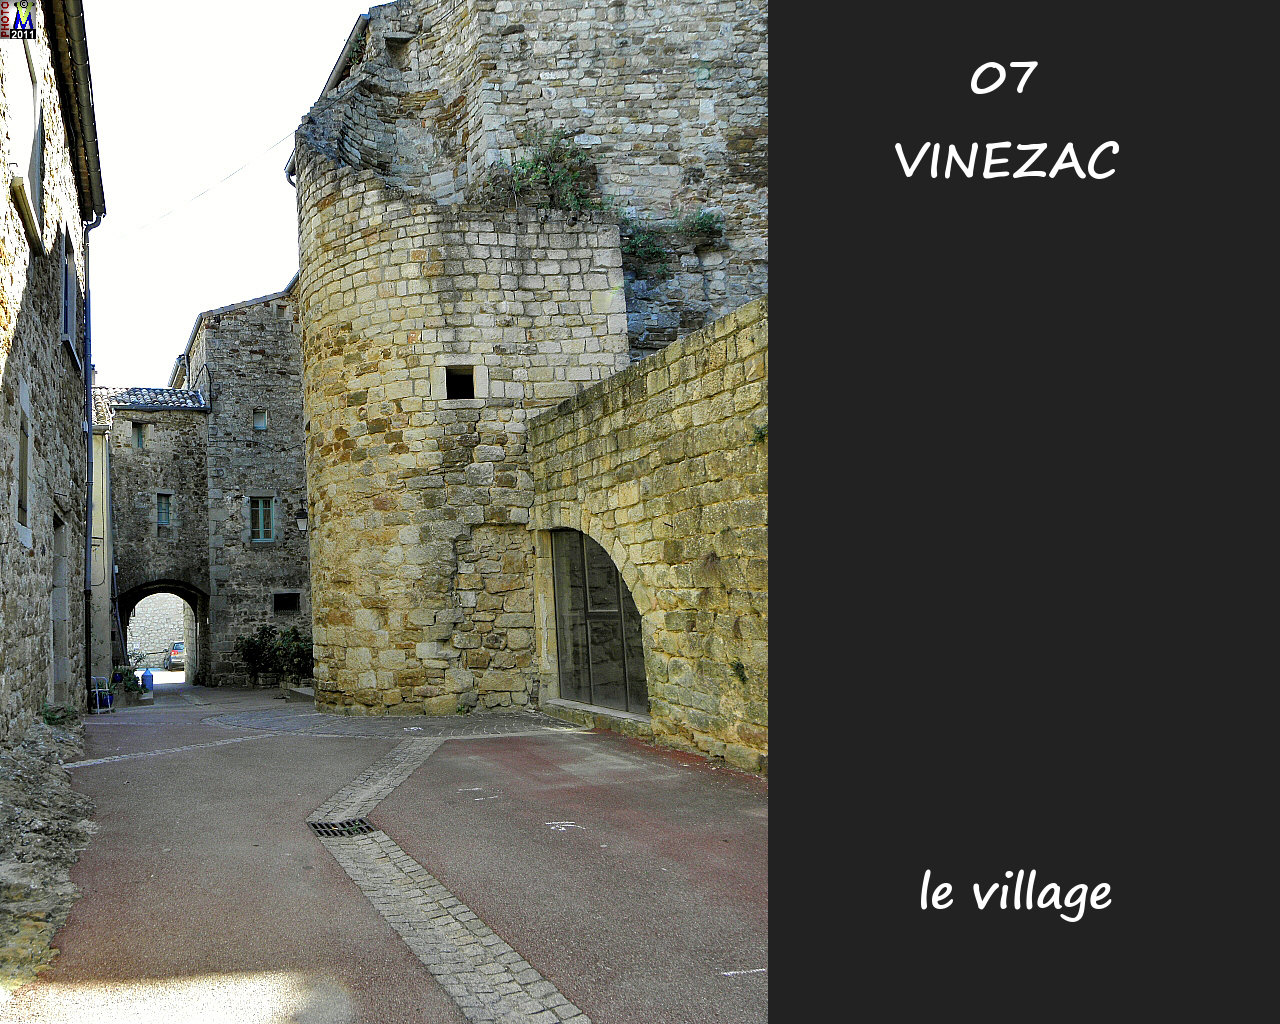 07VINEZAC_village_148.jpg